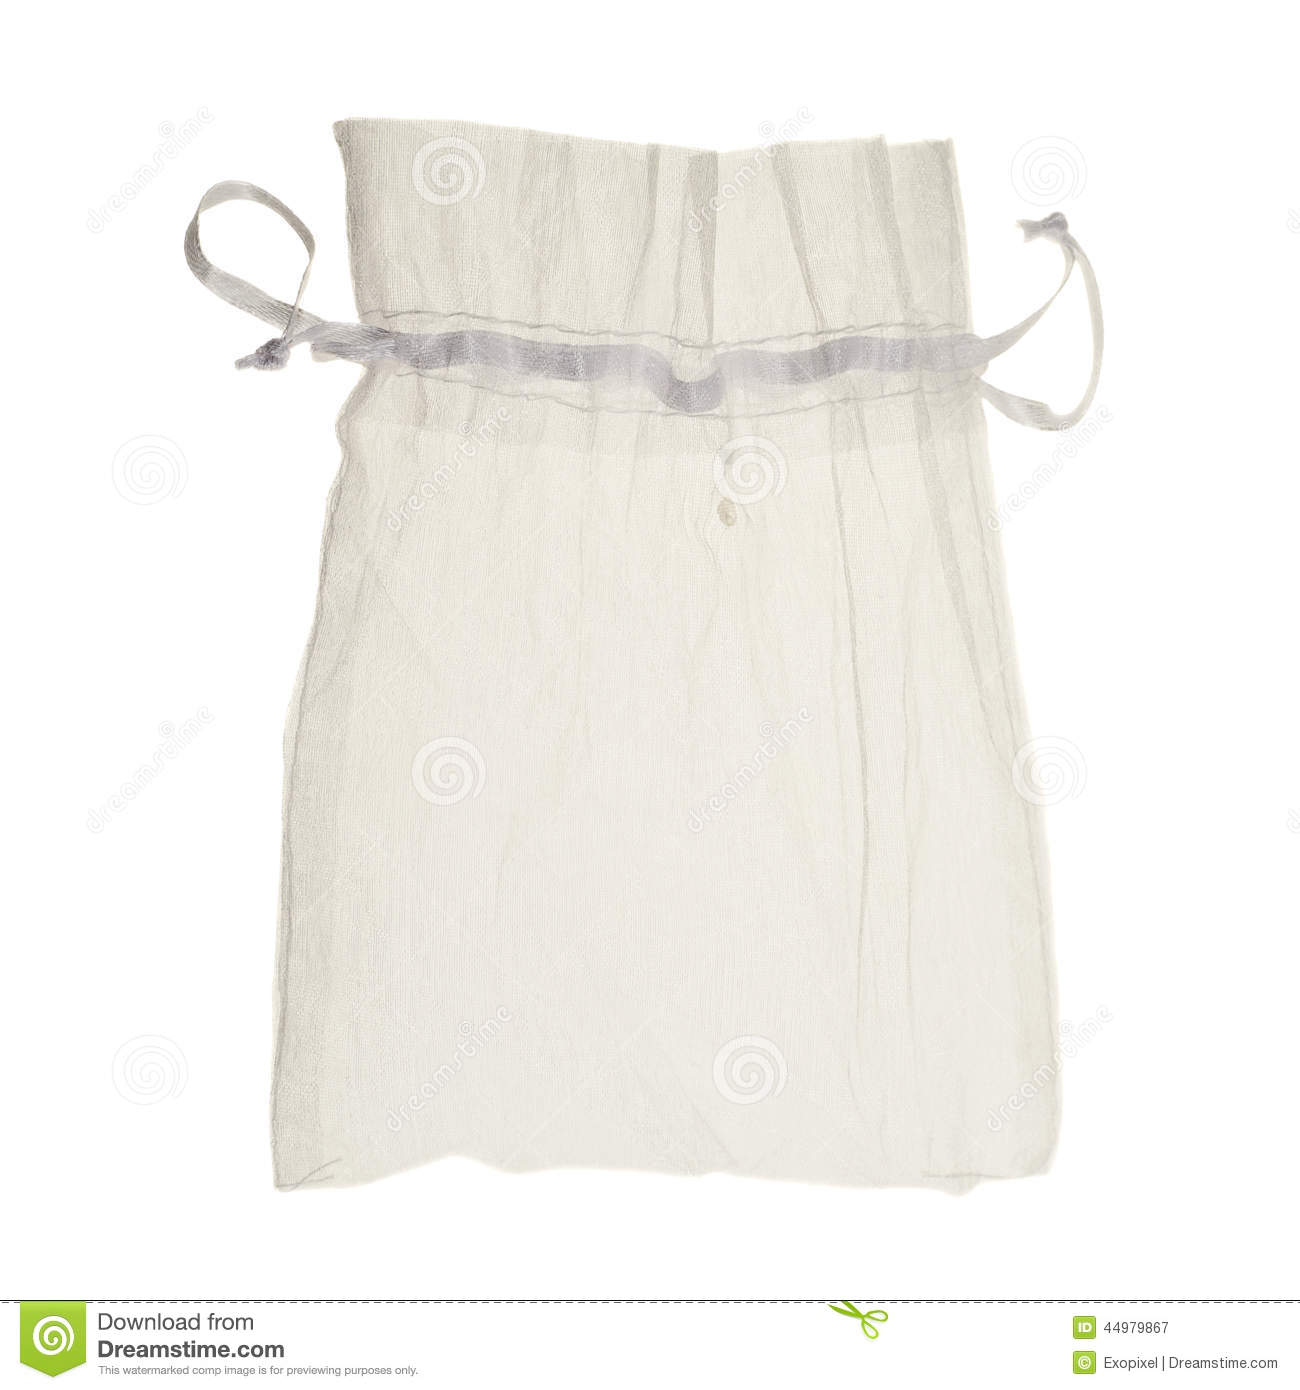 White Drawstring Bag Packaging Isolated Stock Photo - Image: 44979867